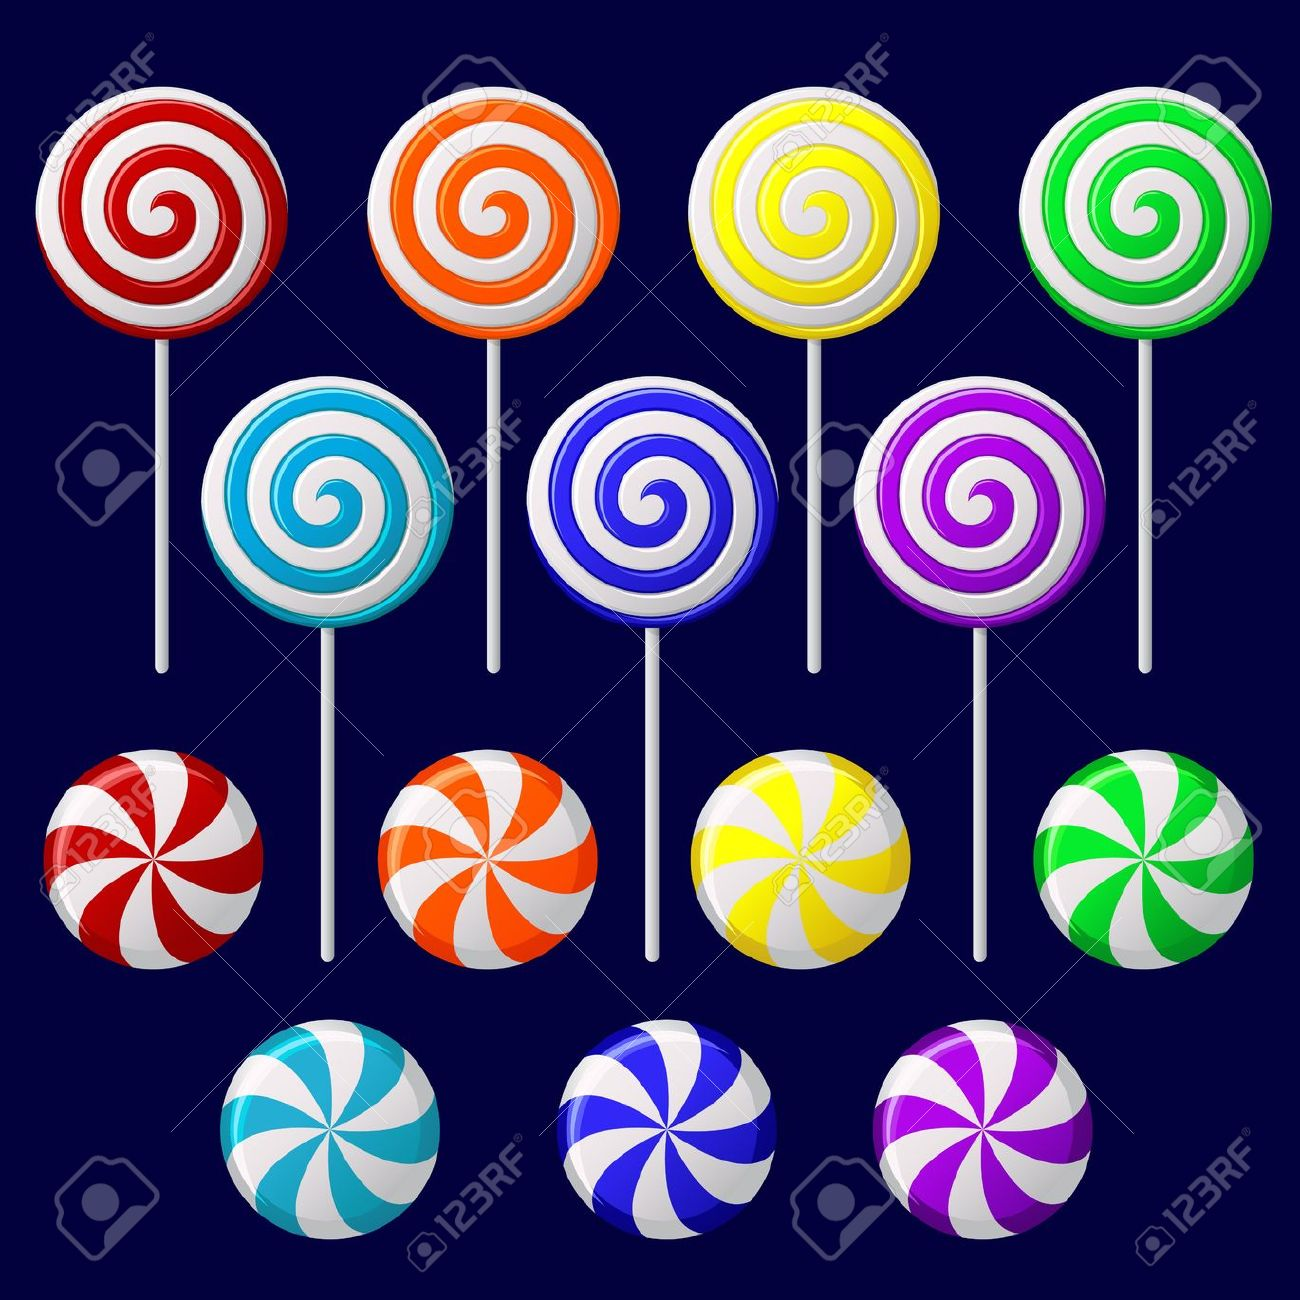 Vector Set With Colorful Candies On Dark Background Royalty Free.